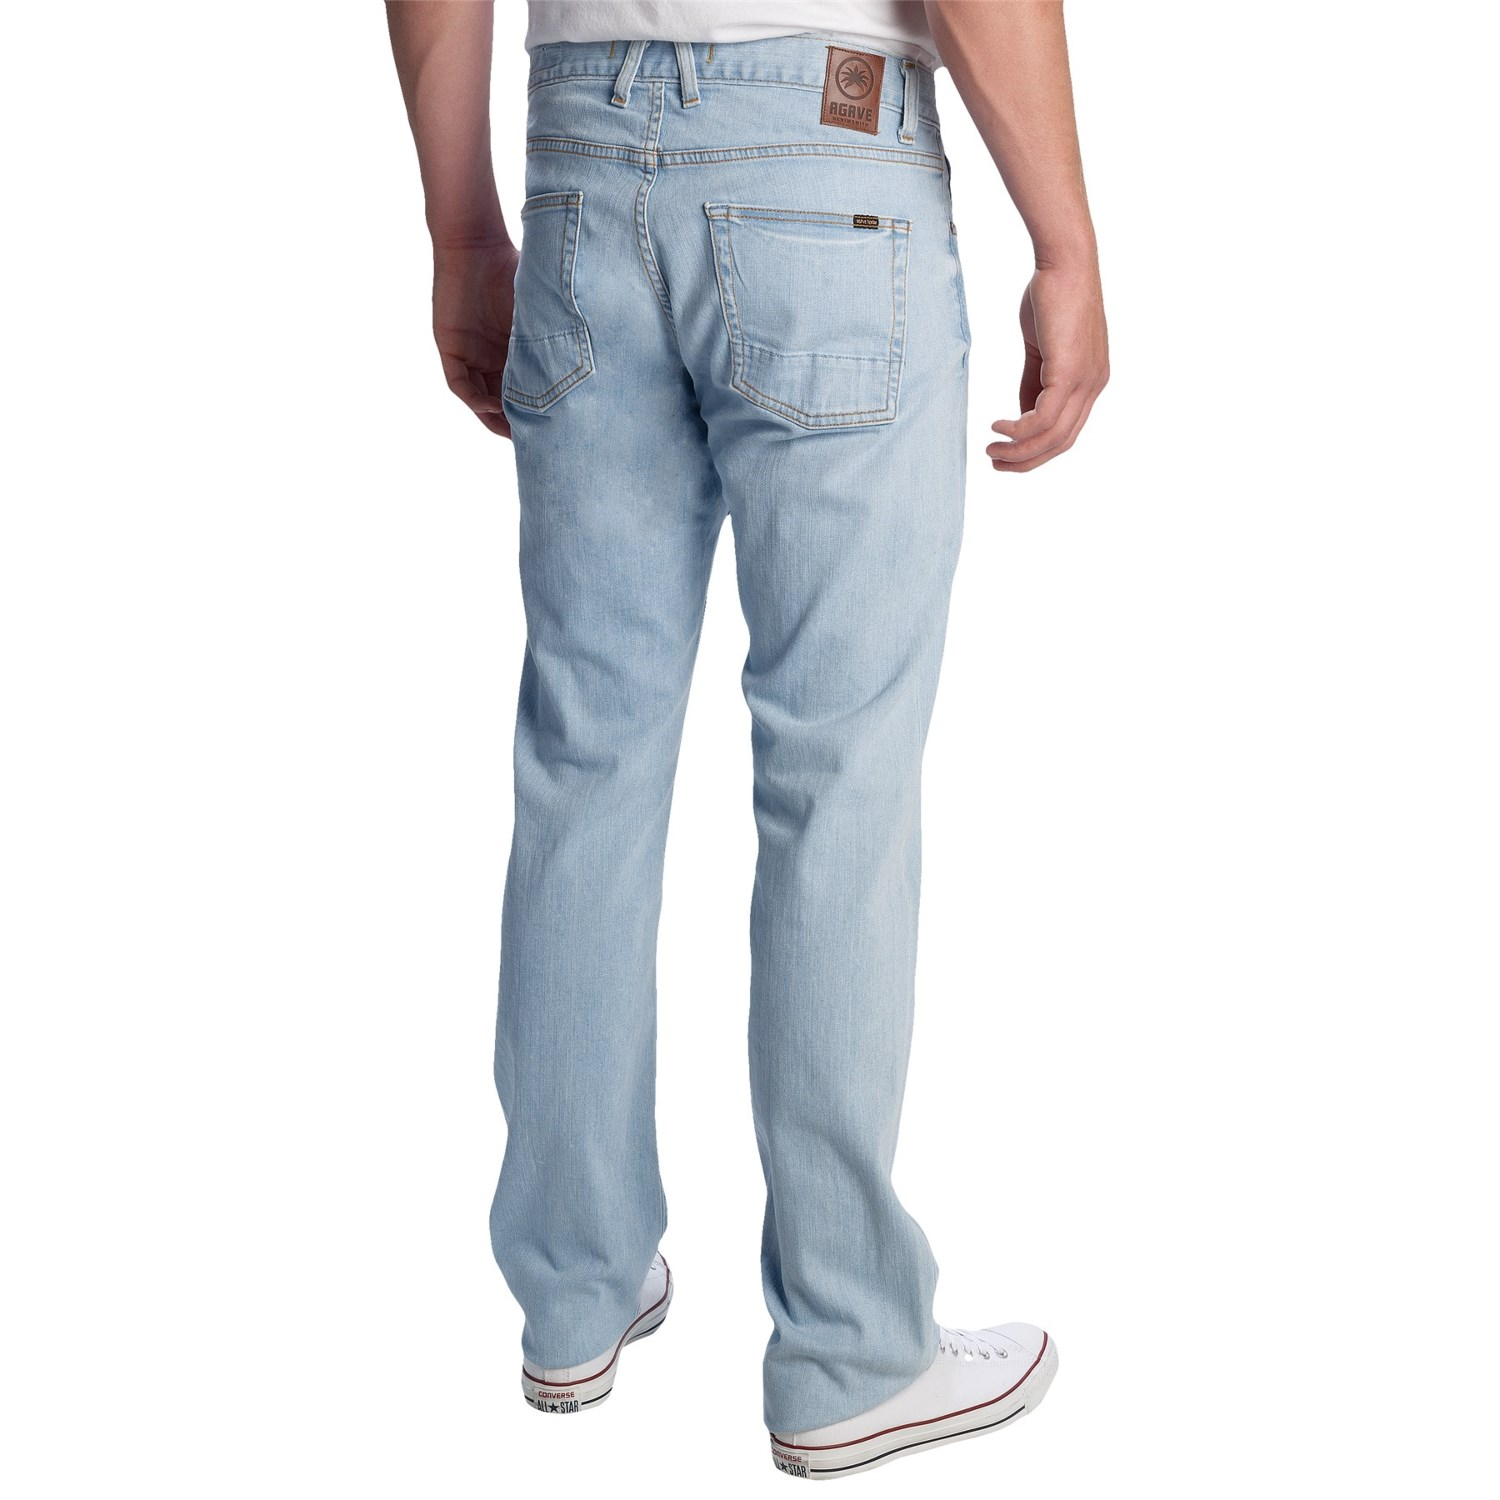 Classic Jeans For Men - Jeans Am